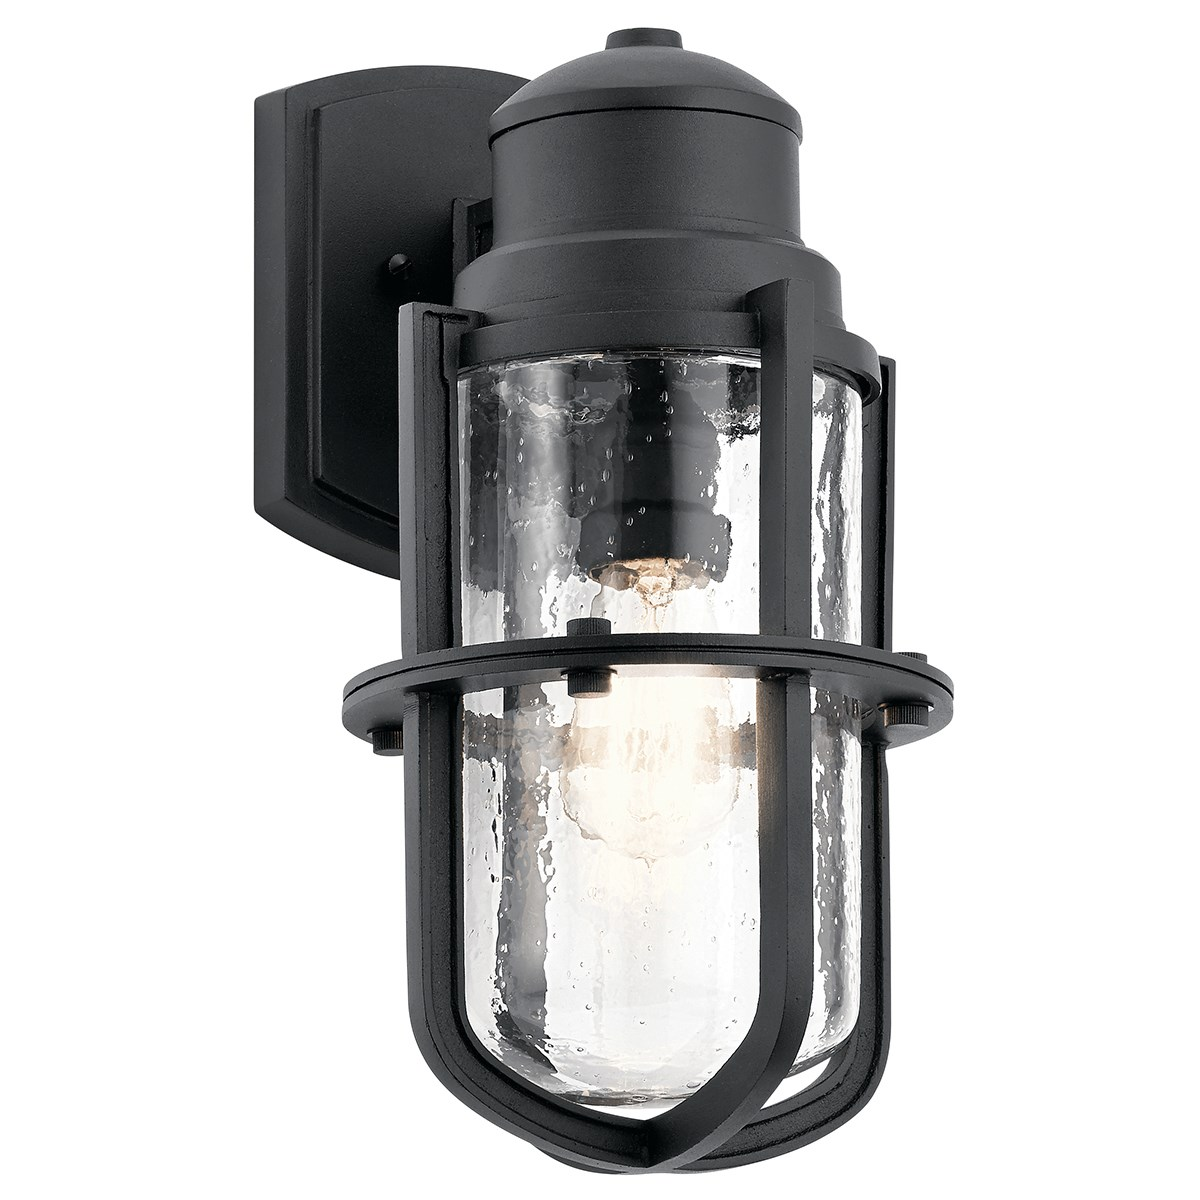 "Suri 15"" 1 Light Wall Light Textured Black"